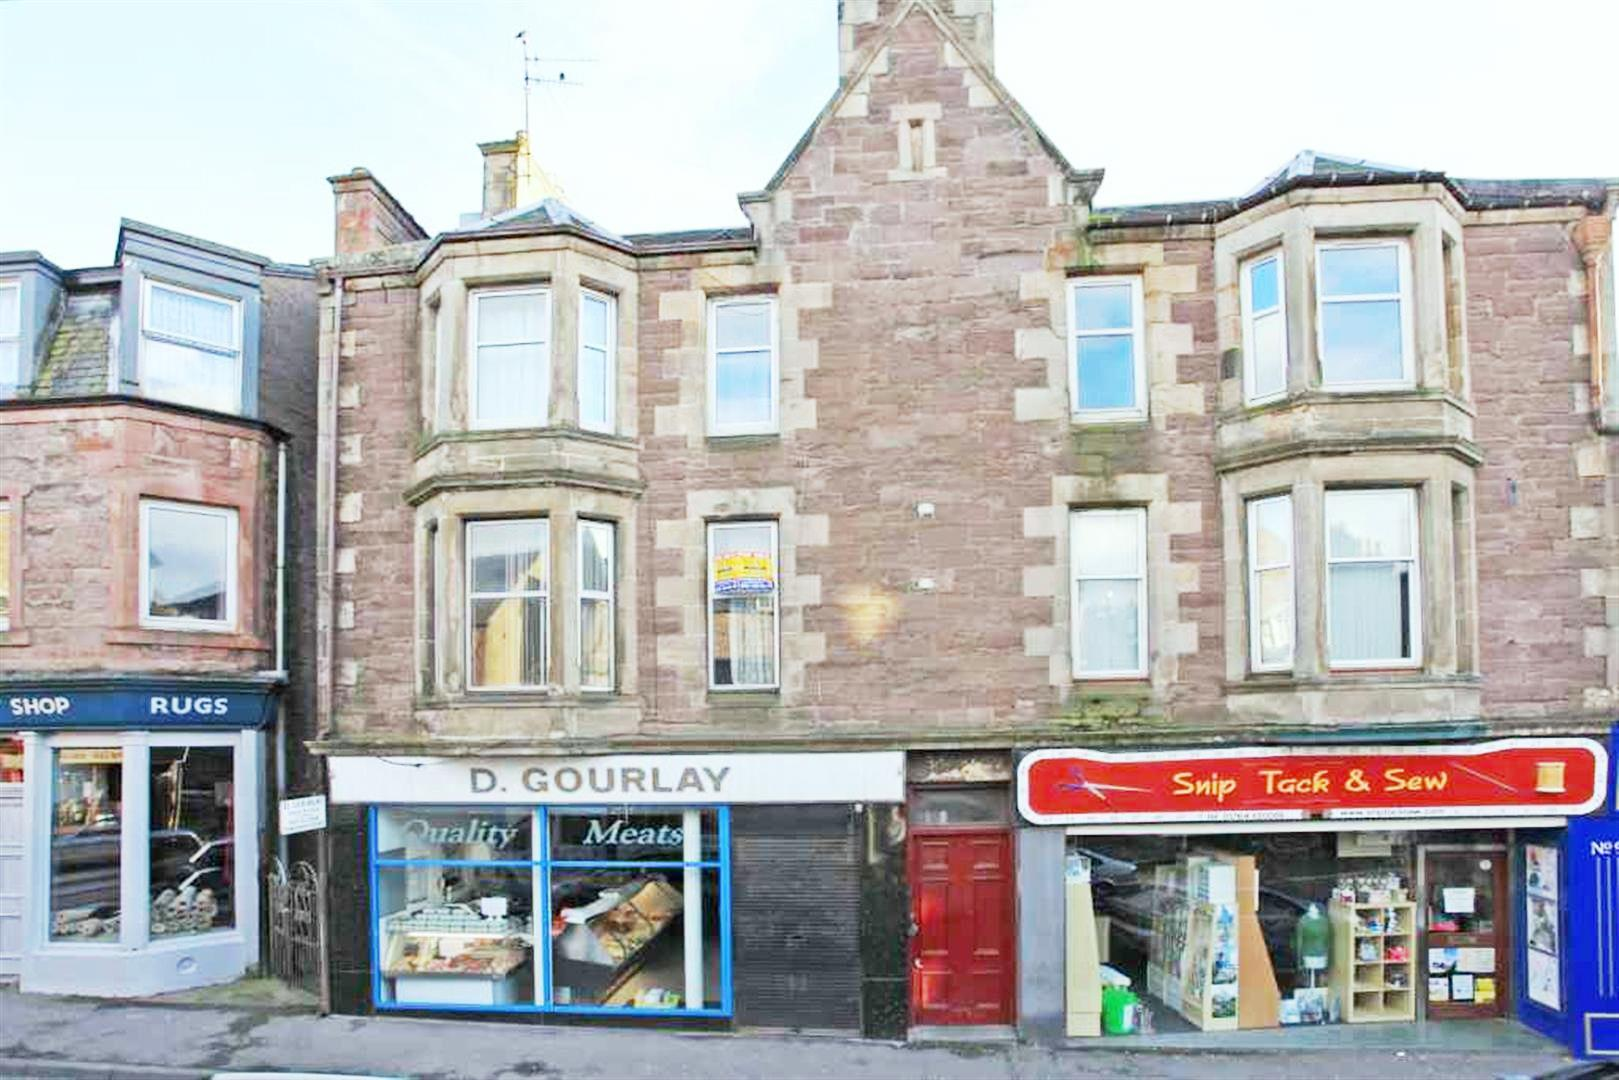 13A, East High Street, Crieff, Perthshire, PH7 3AF, UK